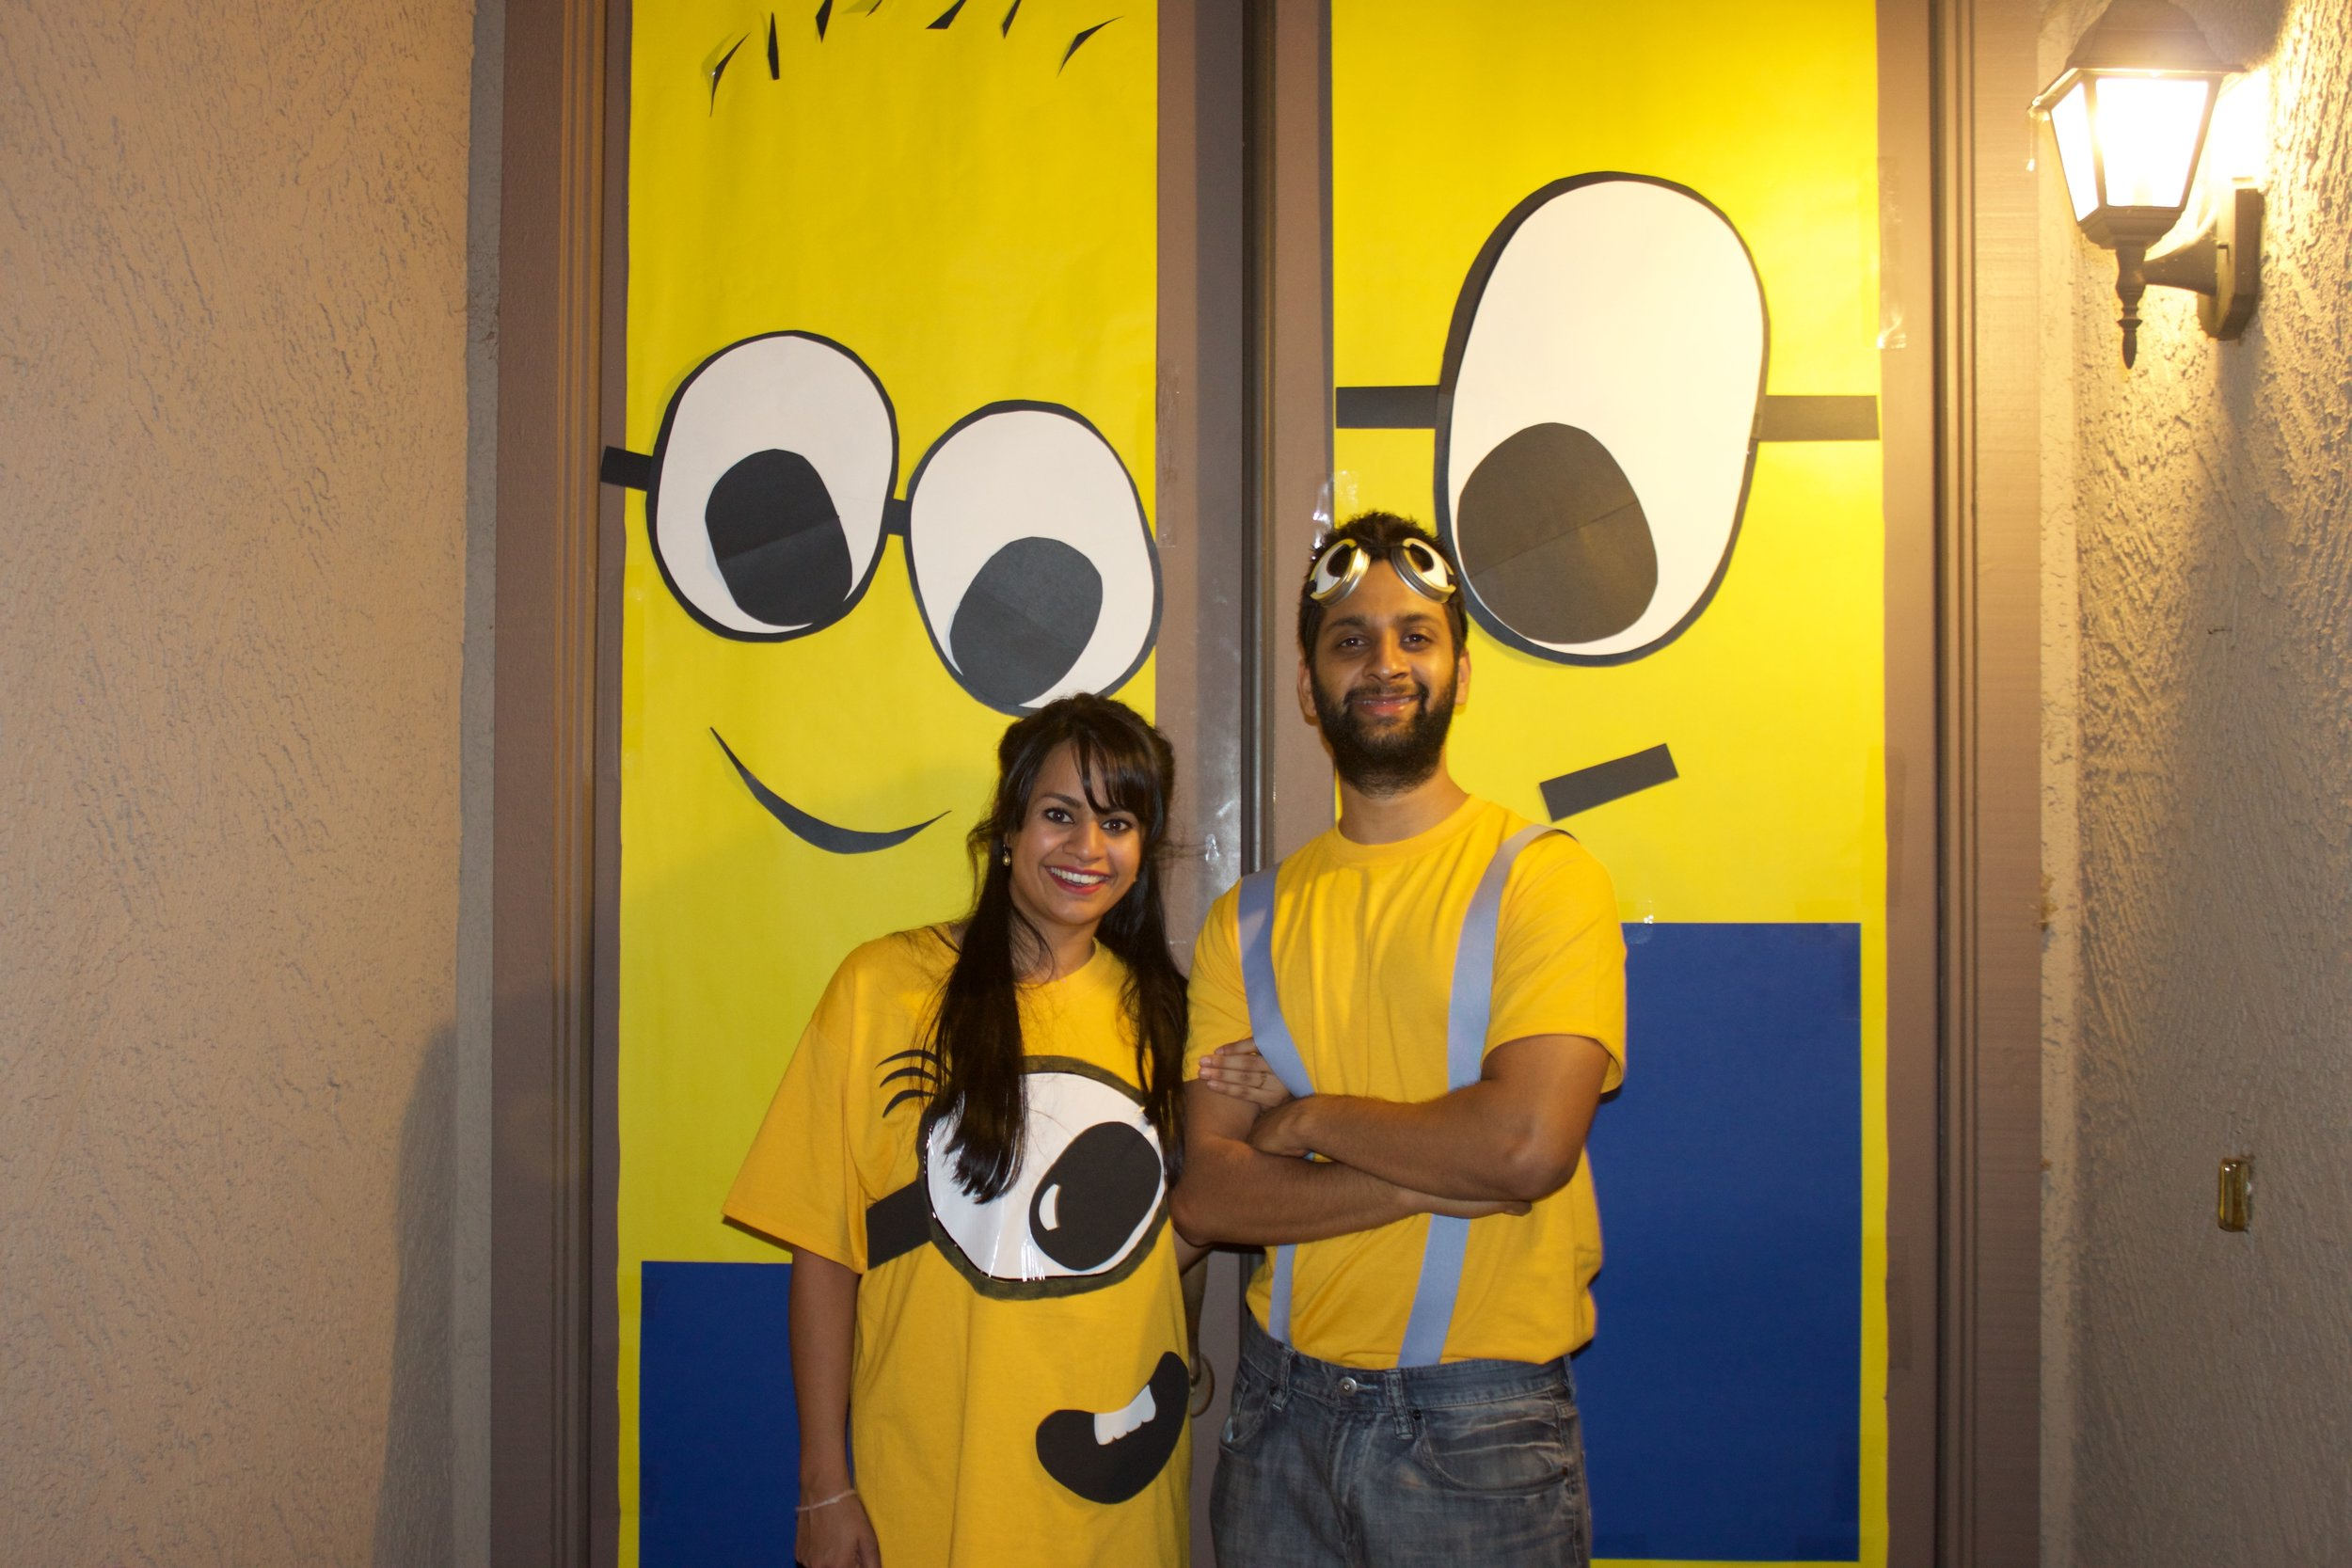 """Standing in front of our #DIY minion doors. The HUBS wanted to be a """"lumberjack"""" Minion 😂.Leave a comment 👇🏽 if you want me to post a tutorial for how to create the HUBS goggles and my minion tshirt. We DIY'd basically everything at this party haha."""